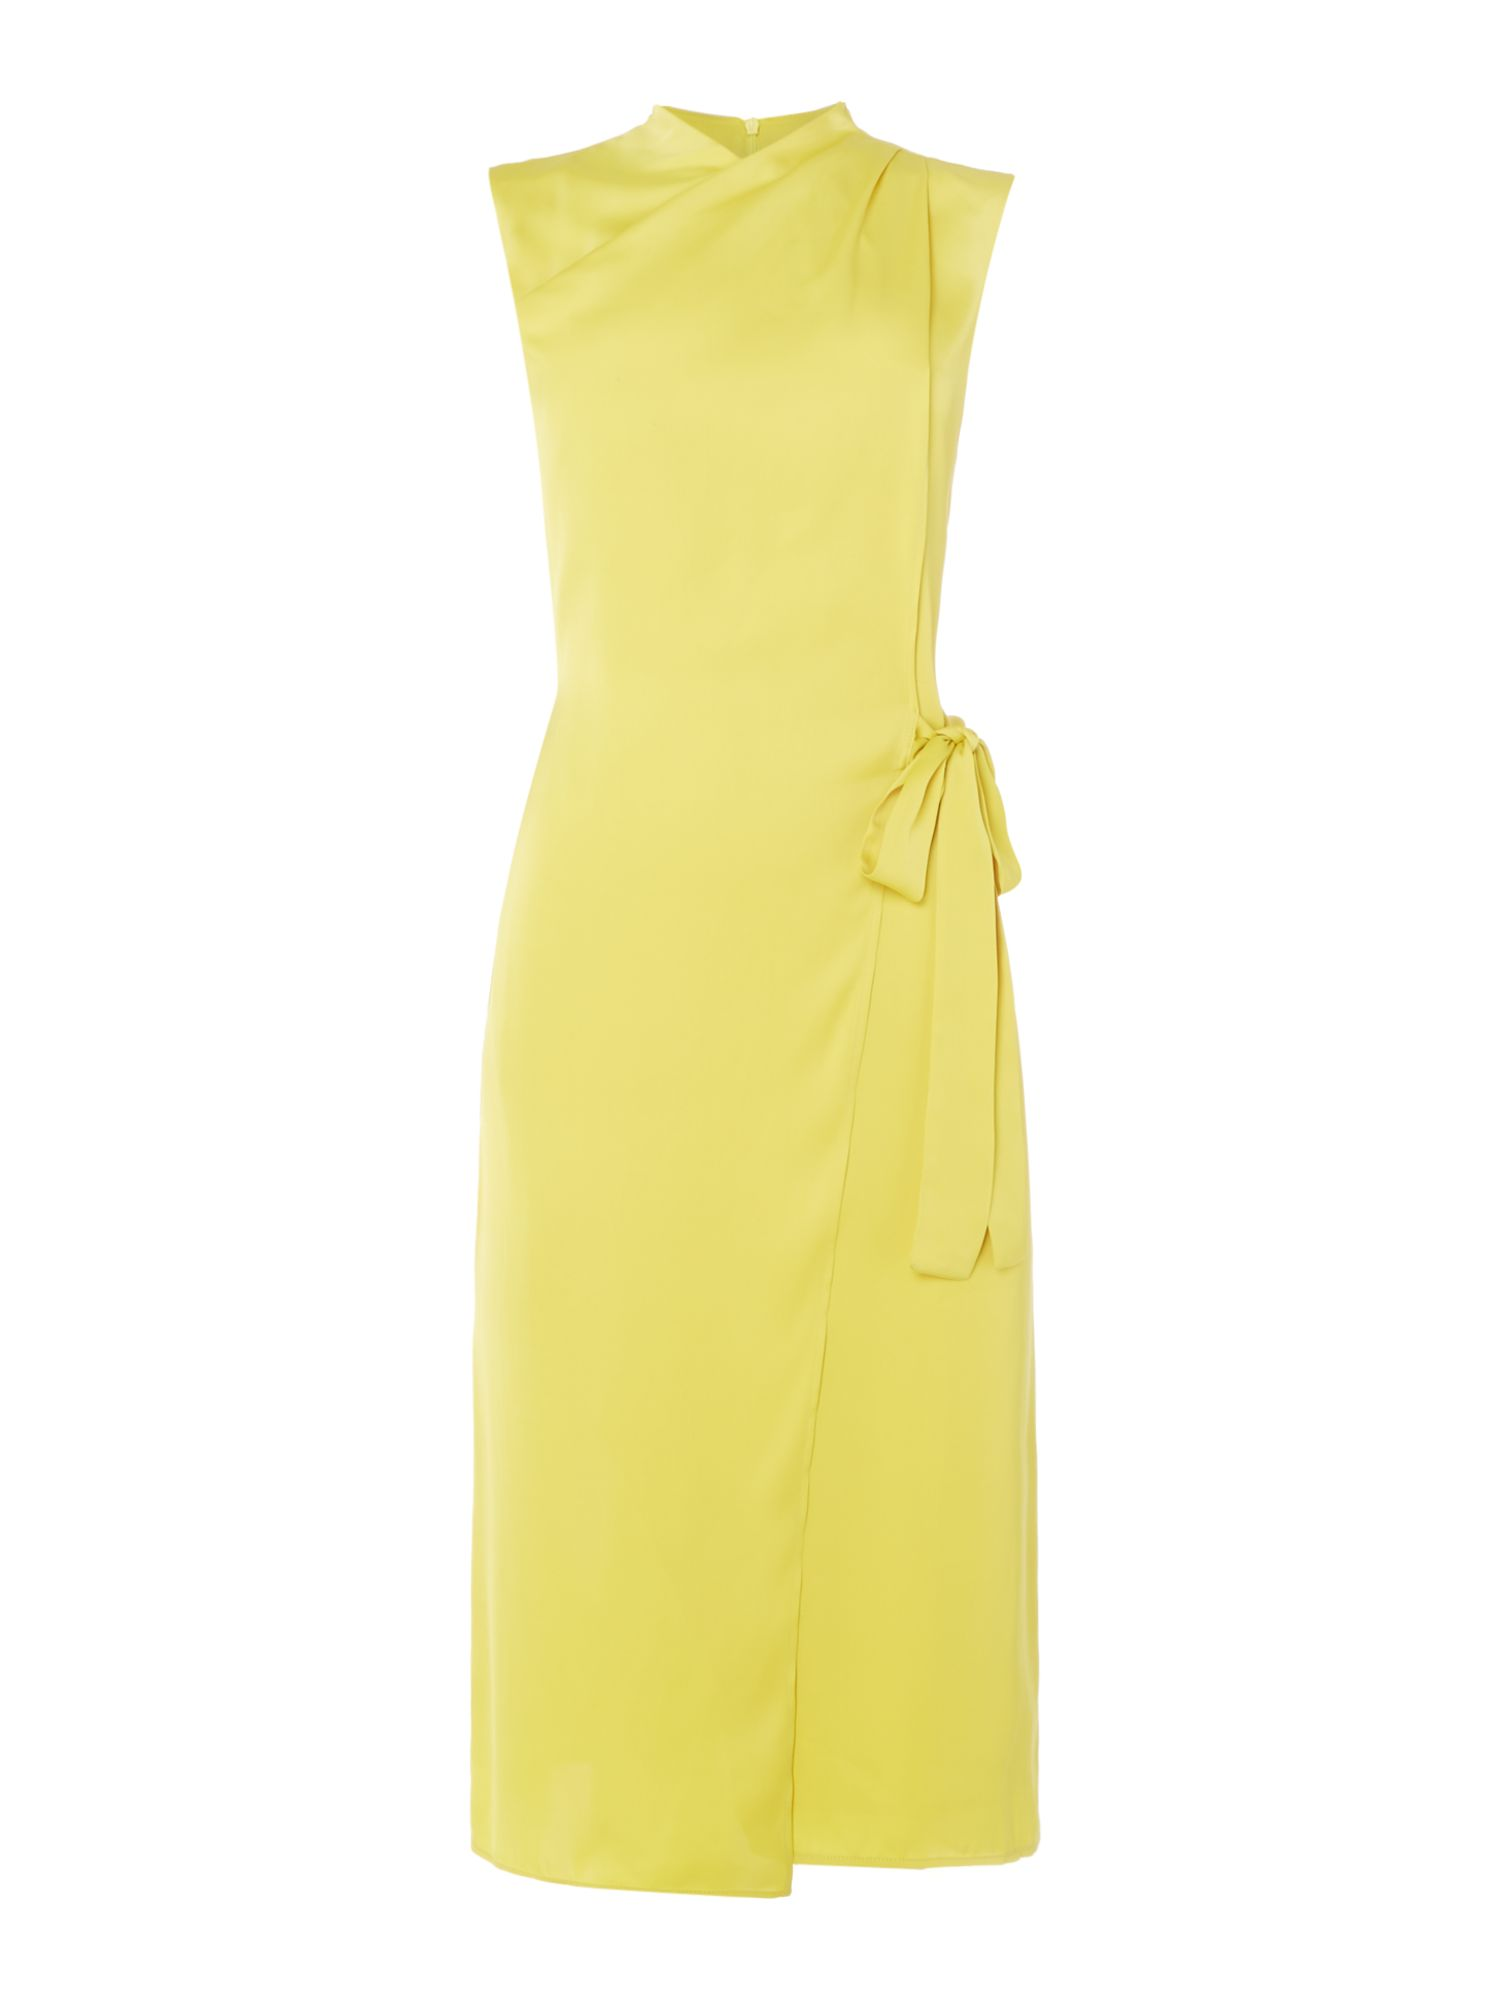 ISSA Stella Wrap Front Tie Dress, Lime